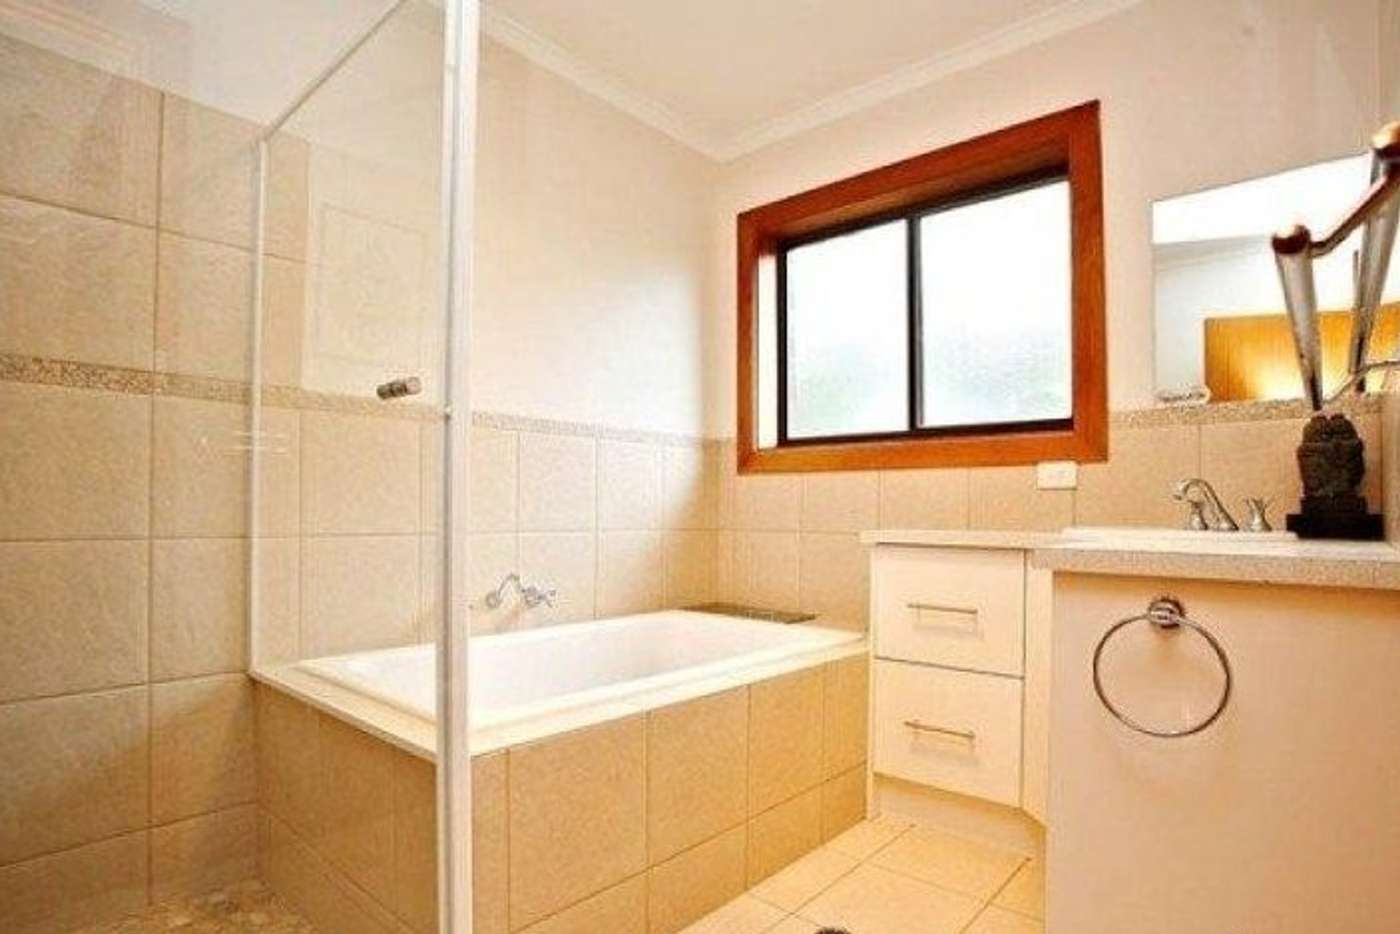 Sixth view of Homely house listing, 45 Old Road, Victor Harbor SA 5211